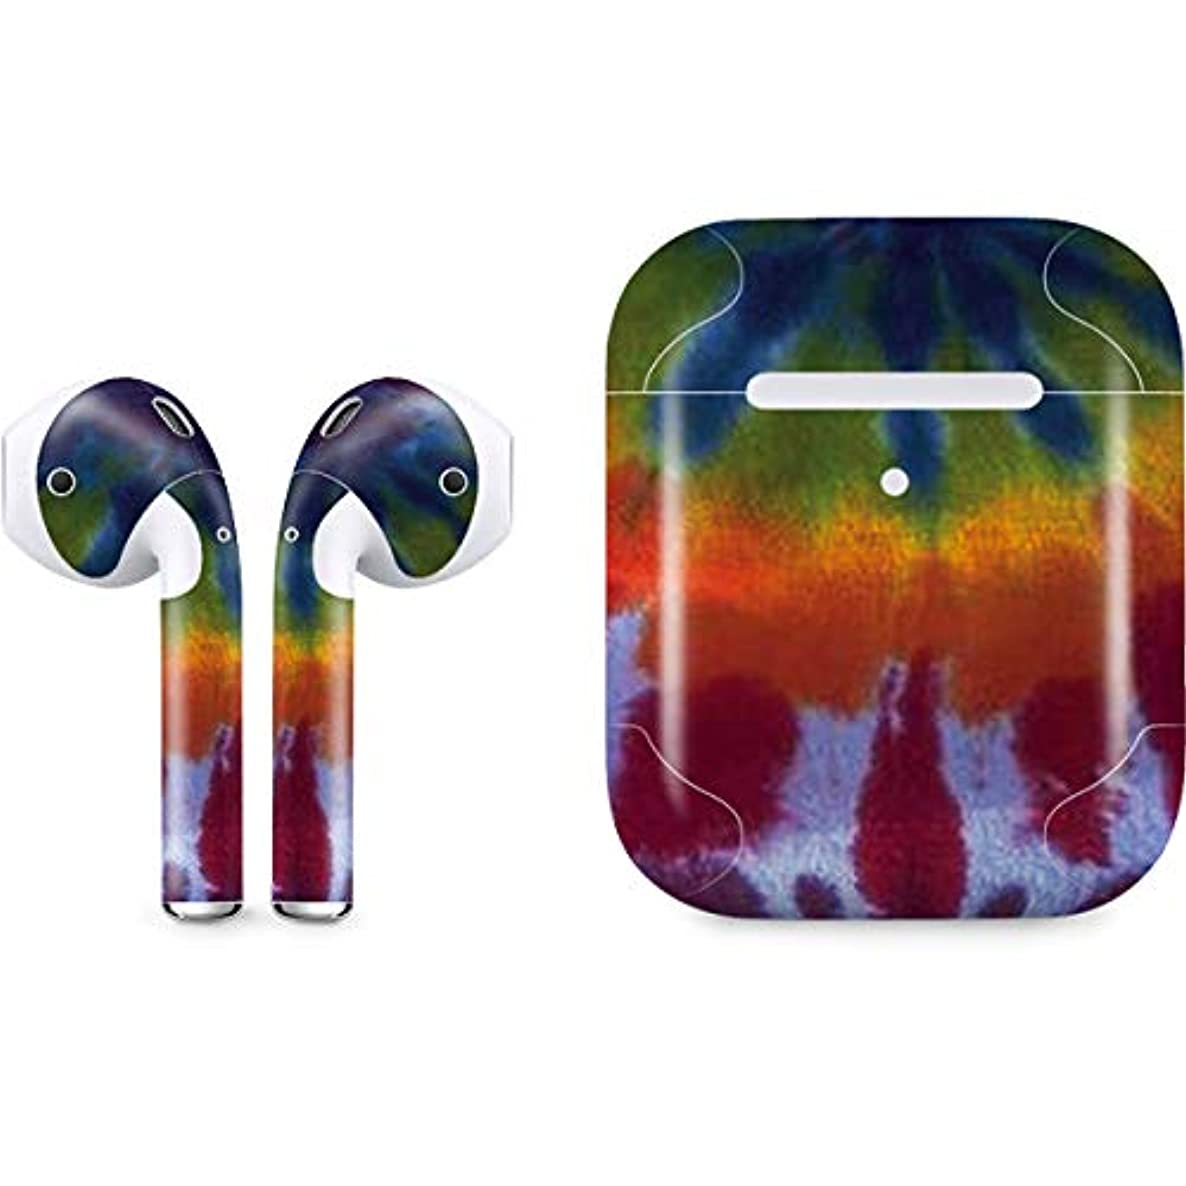 Skinit Tie Dye Apple AirPods 2 Skin - Original Skinit Studios Designed Audio Sticker - Thin, Case Decal Protective Wrap for Apple AirPods 2